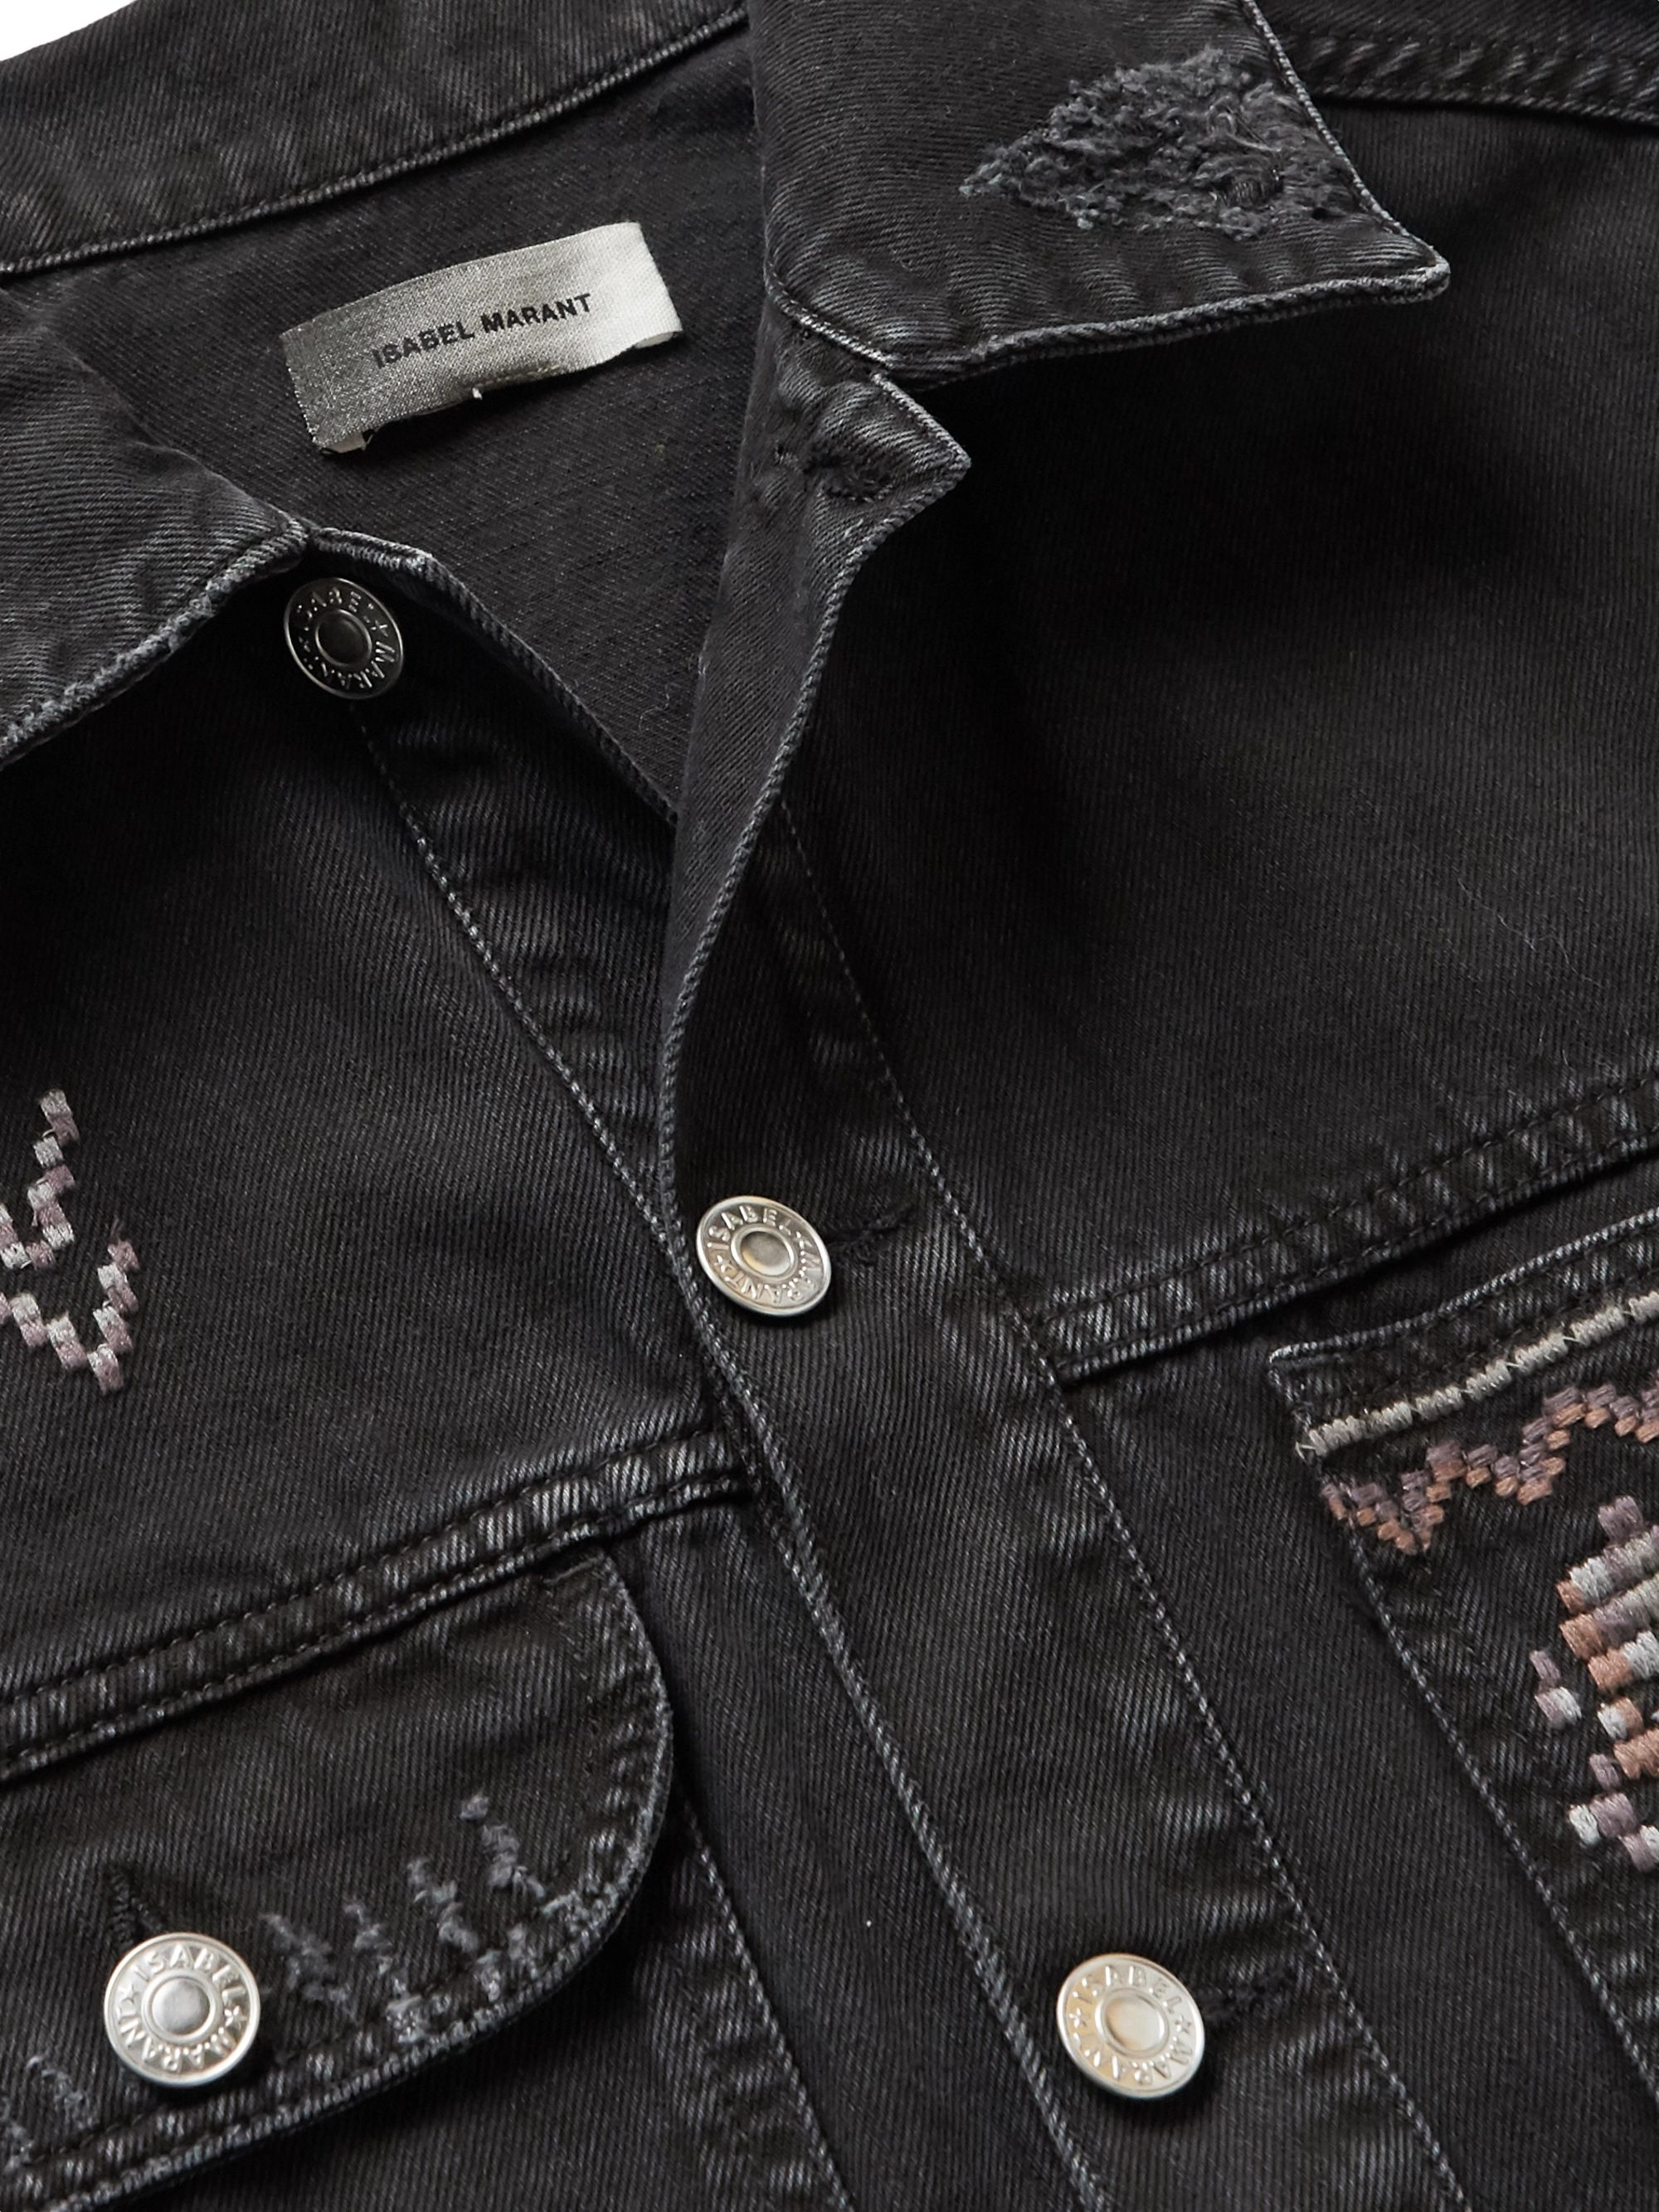 Isabel Marant Embroidered Distressed Denim Jacket